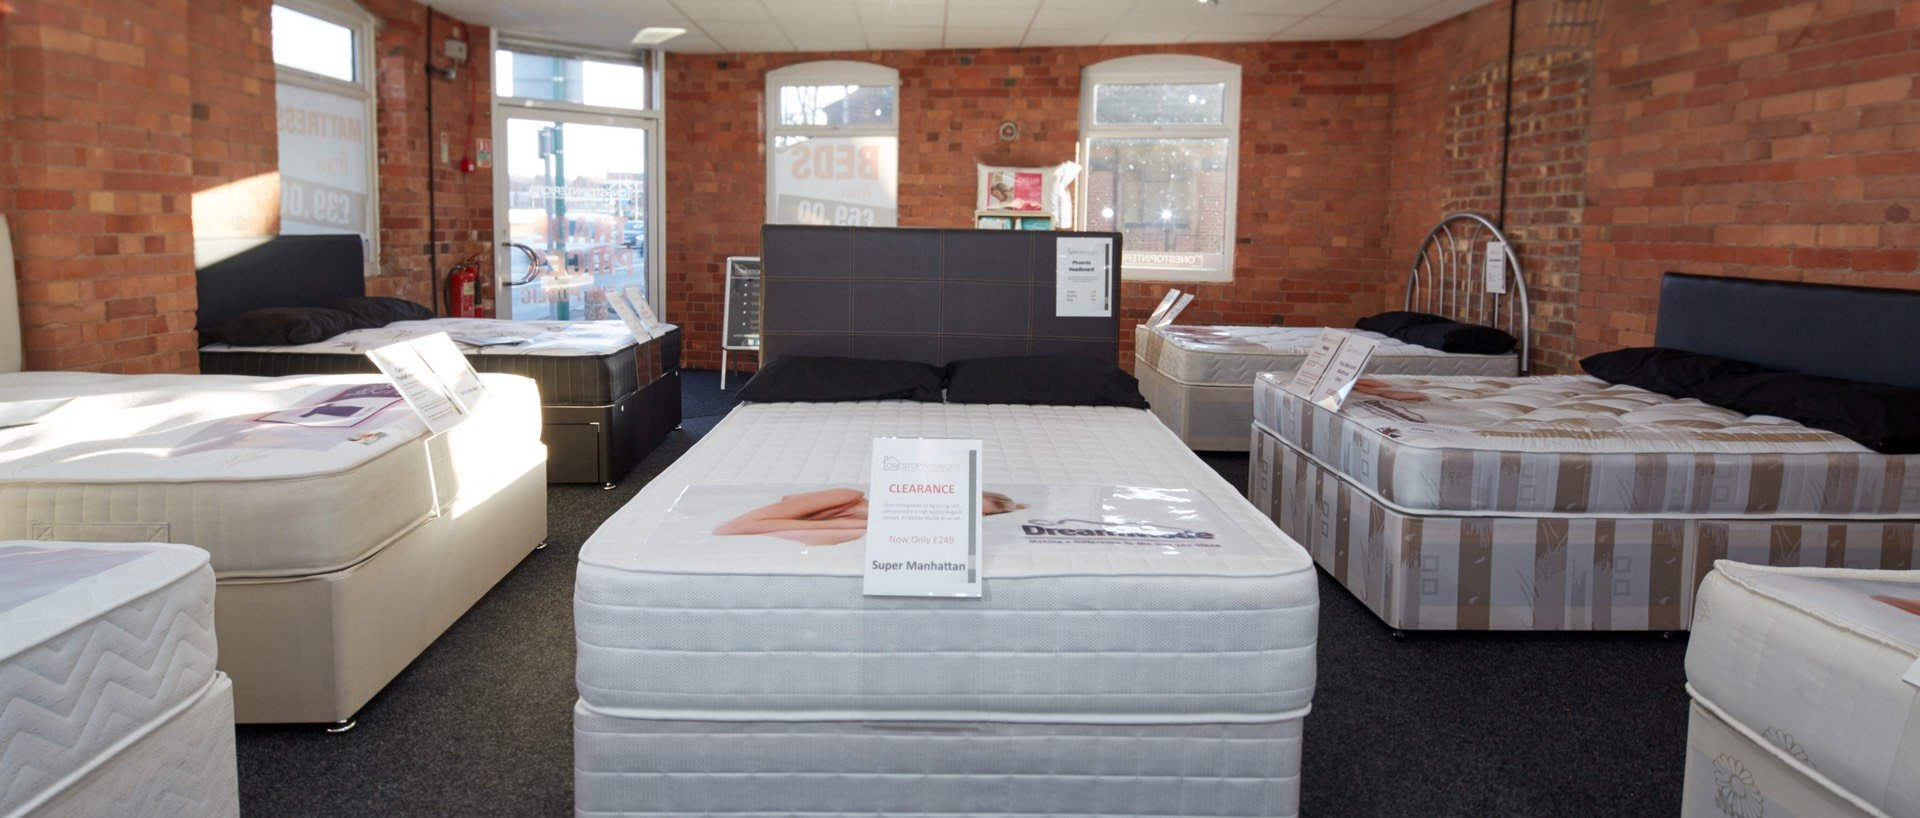 Showroom Beds, Mattresses, Carpets, Laminate Flooring in Nottingham